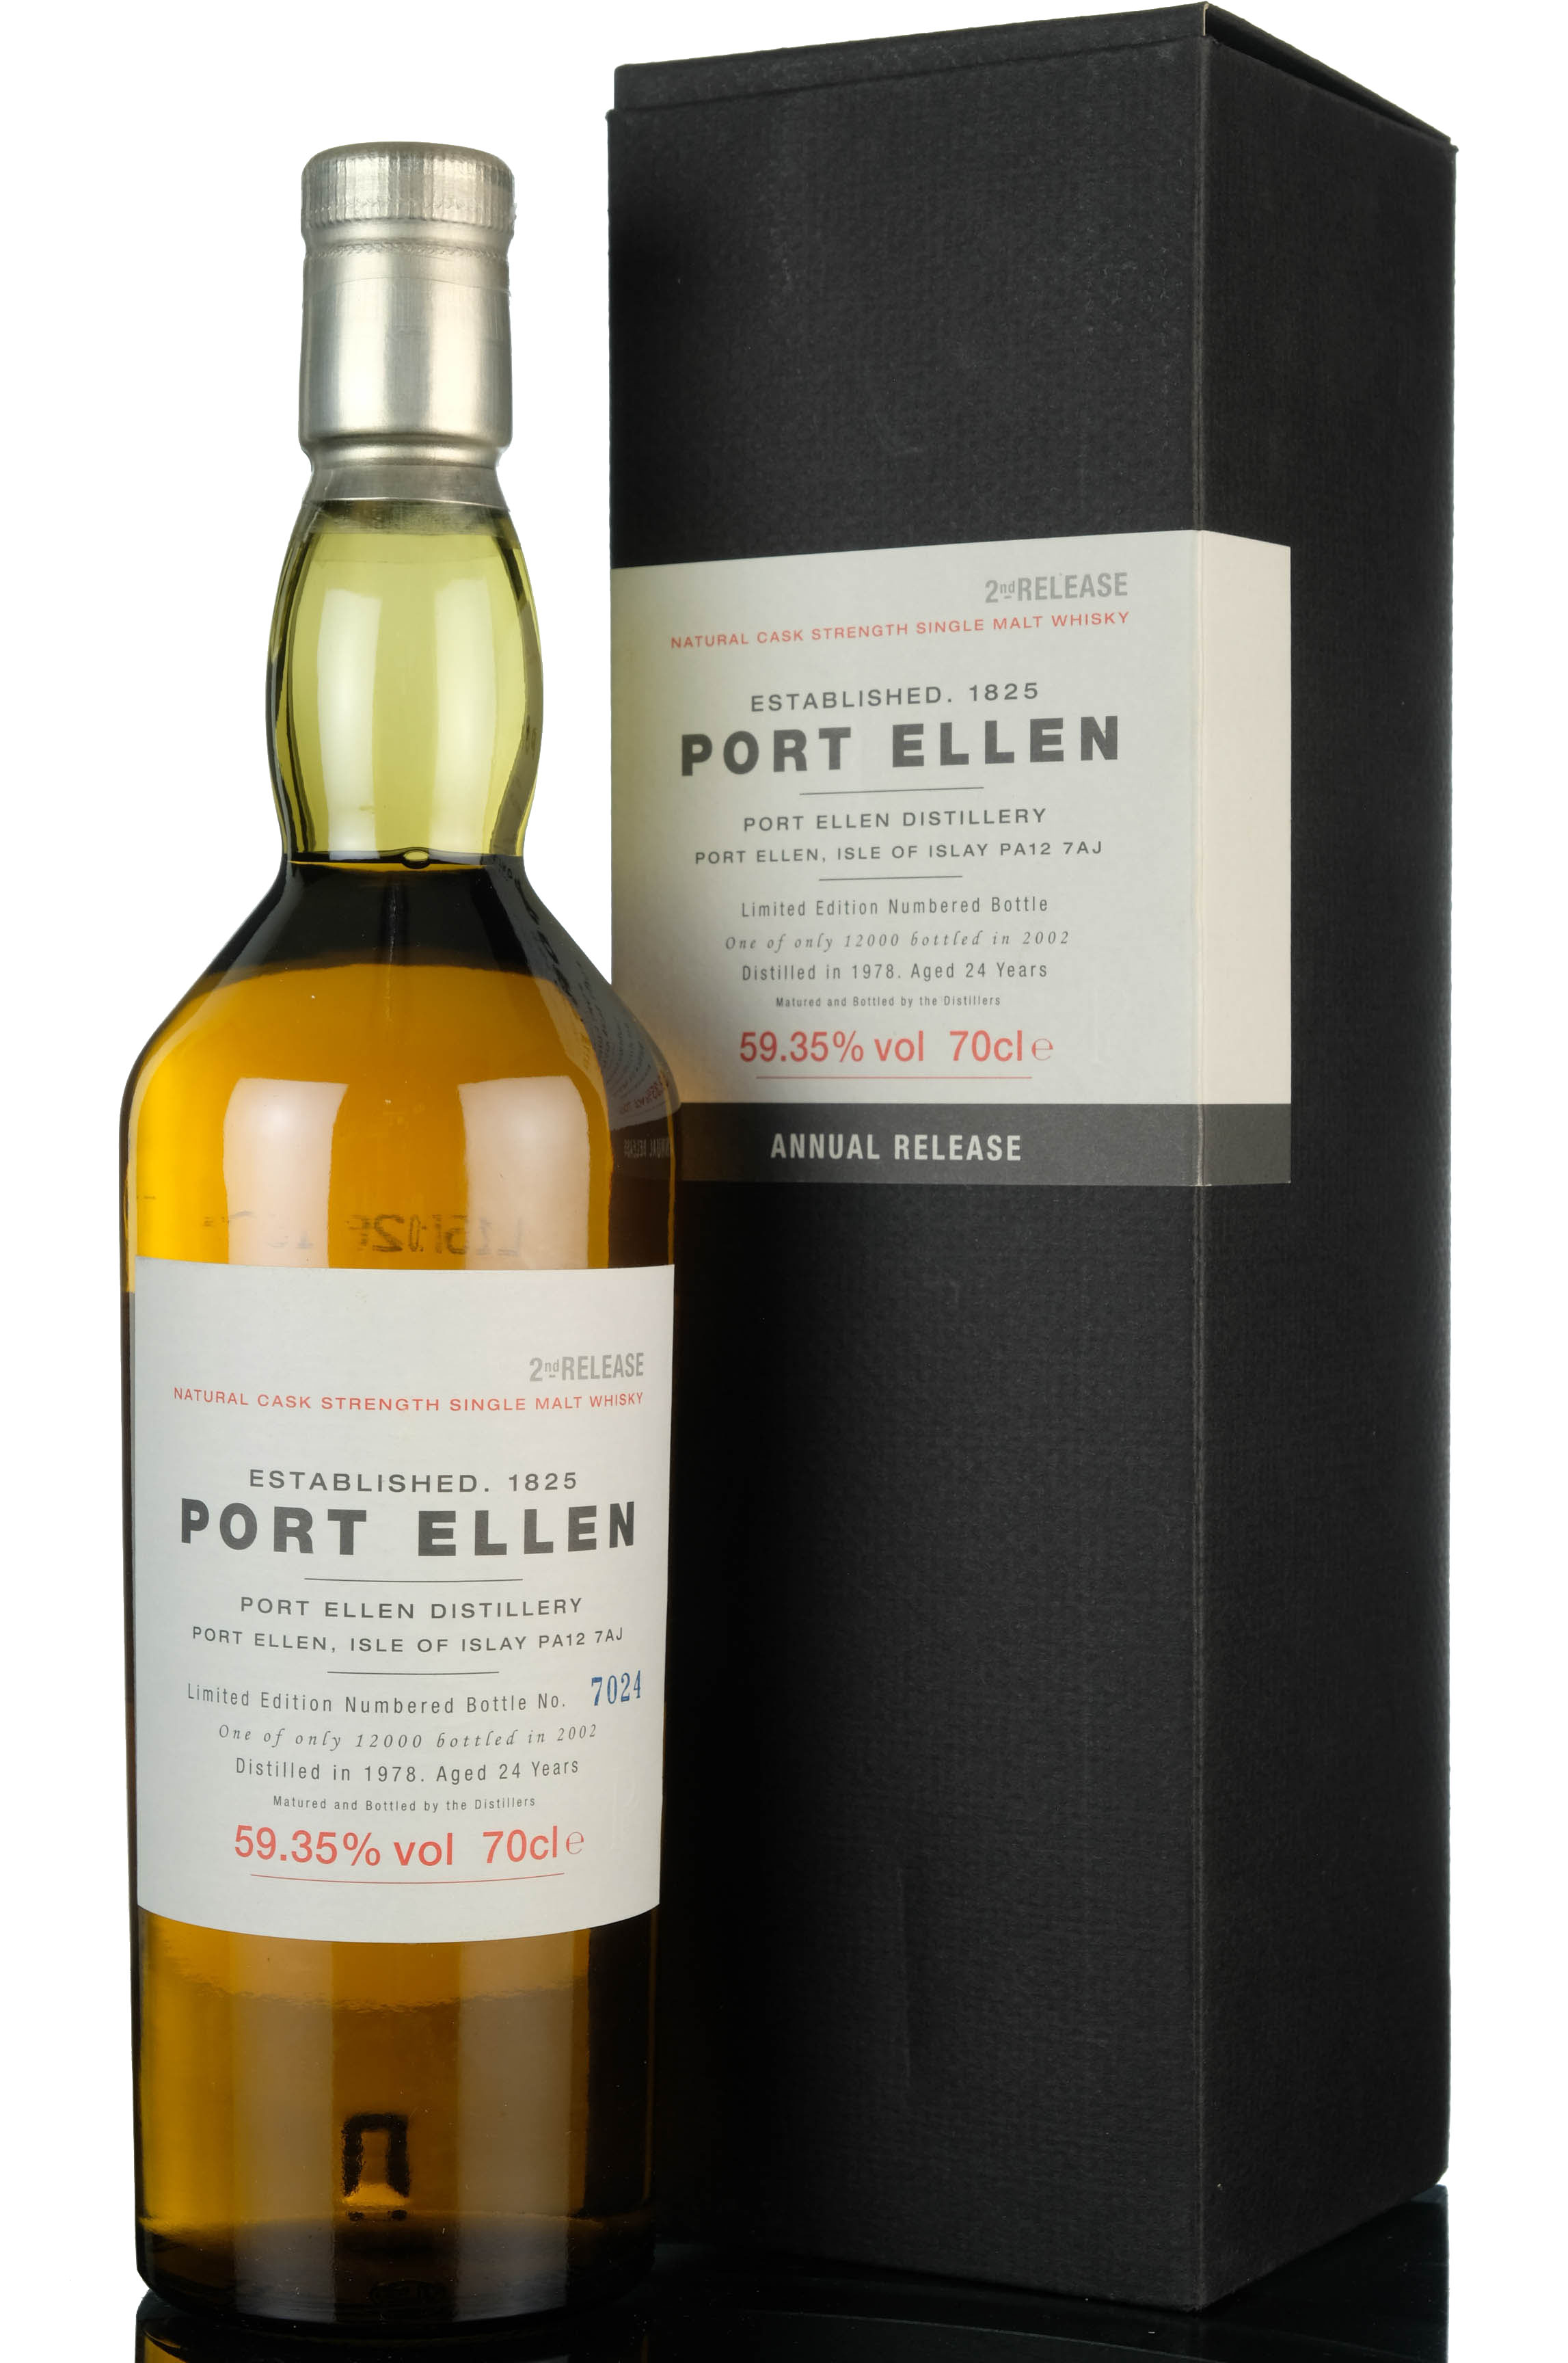 port ellen 1978-2002 - 24 year old - 2nd release